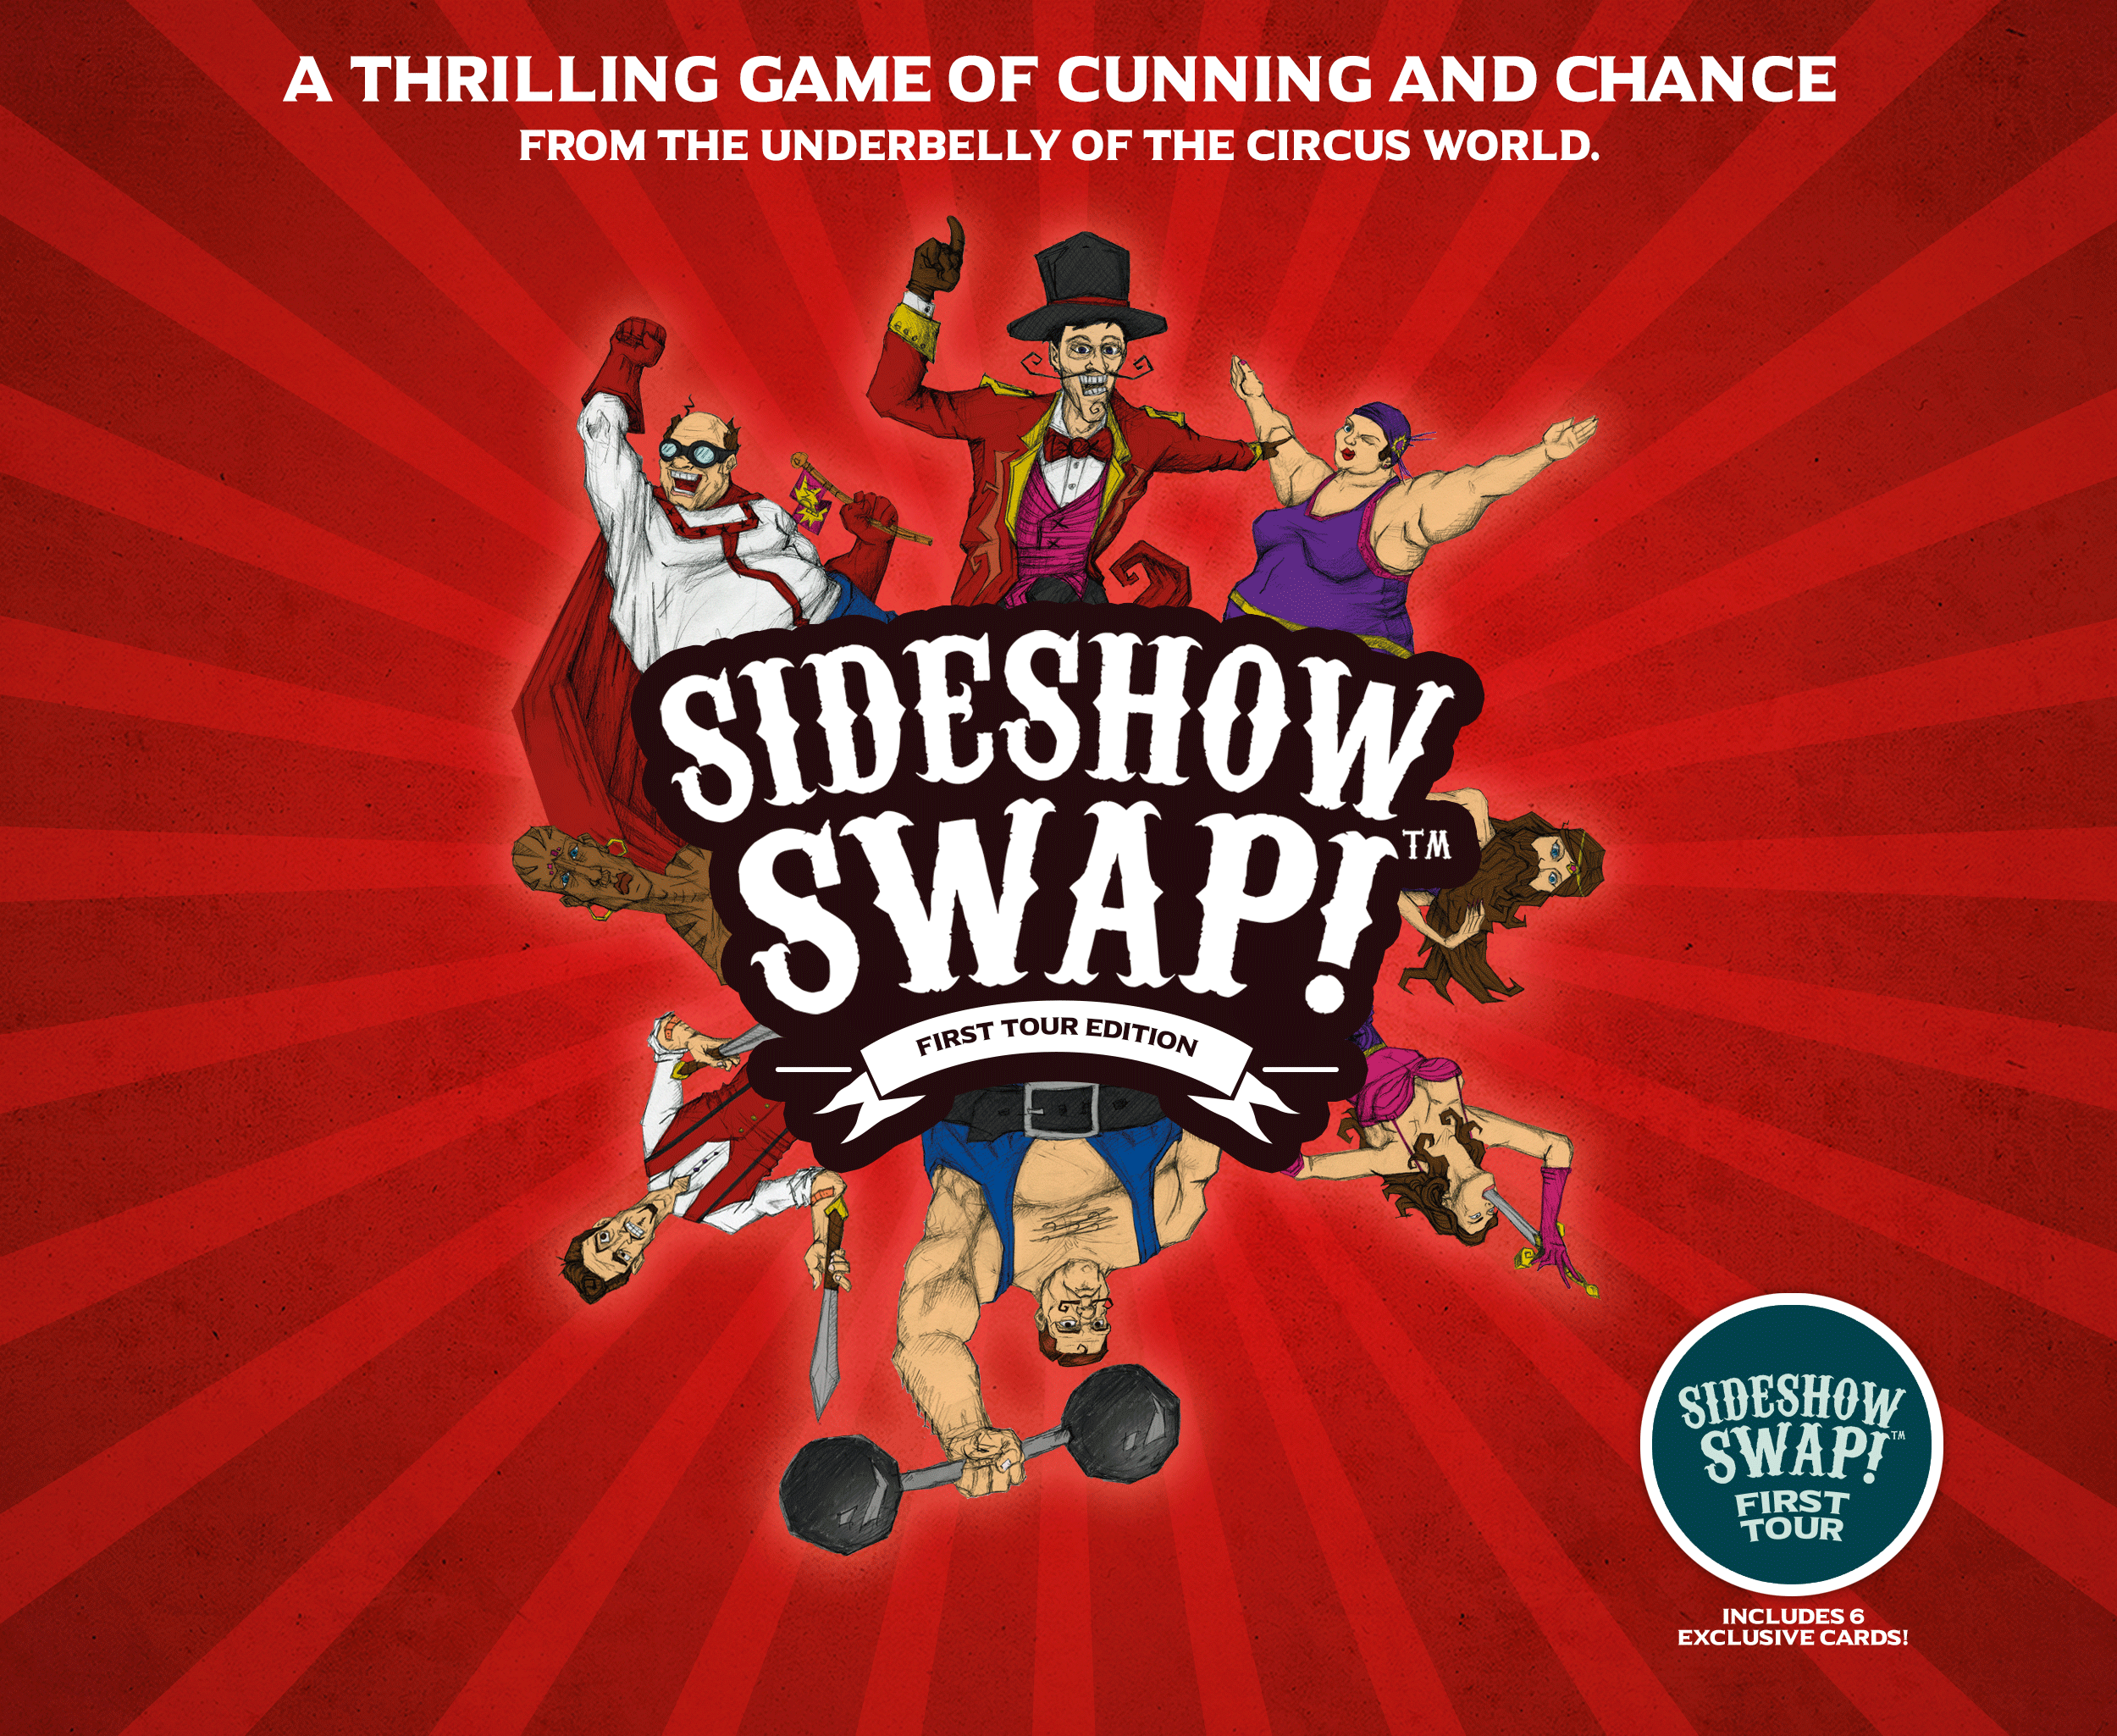 Sideshow Swap! Welcome to the Show!